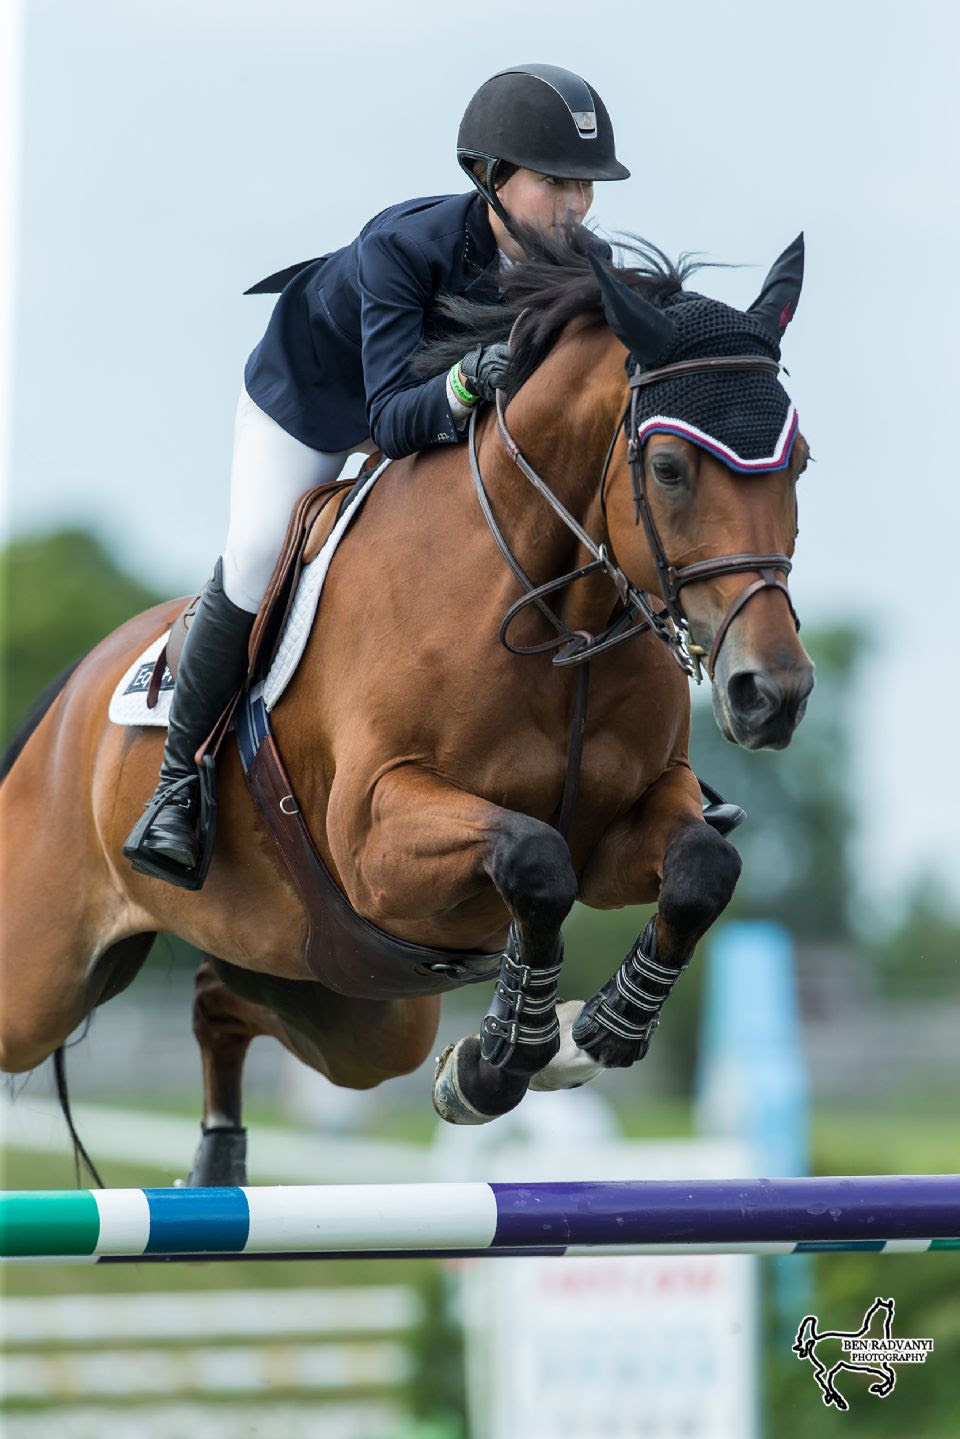 Thumbnail for Ian Millar 2nd, Lucy Deslauriers Wins $100,000 Grand Prix at Ottawa International